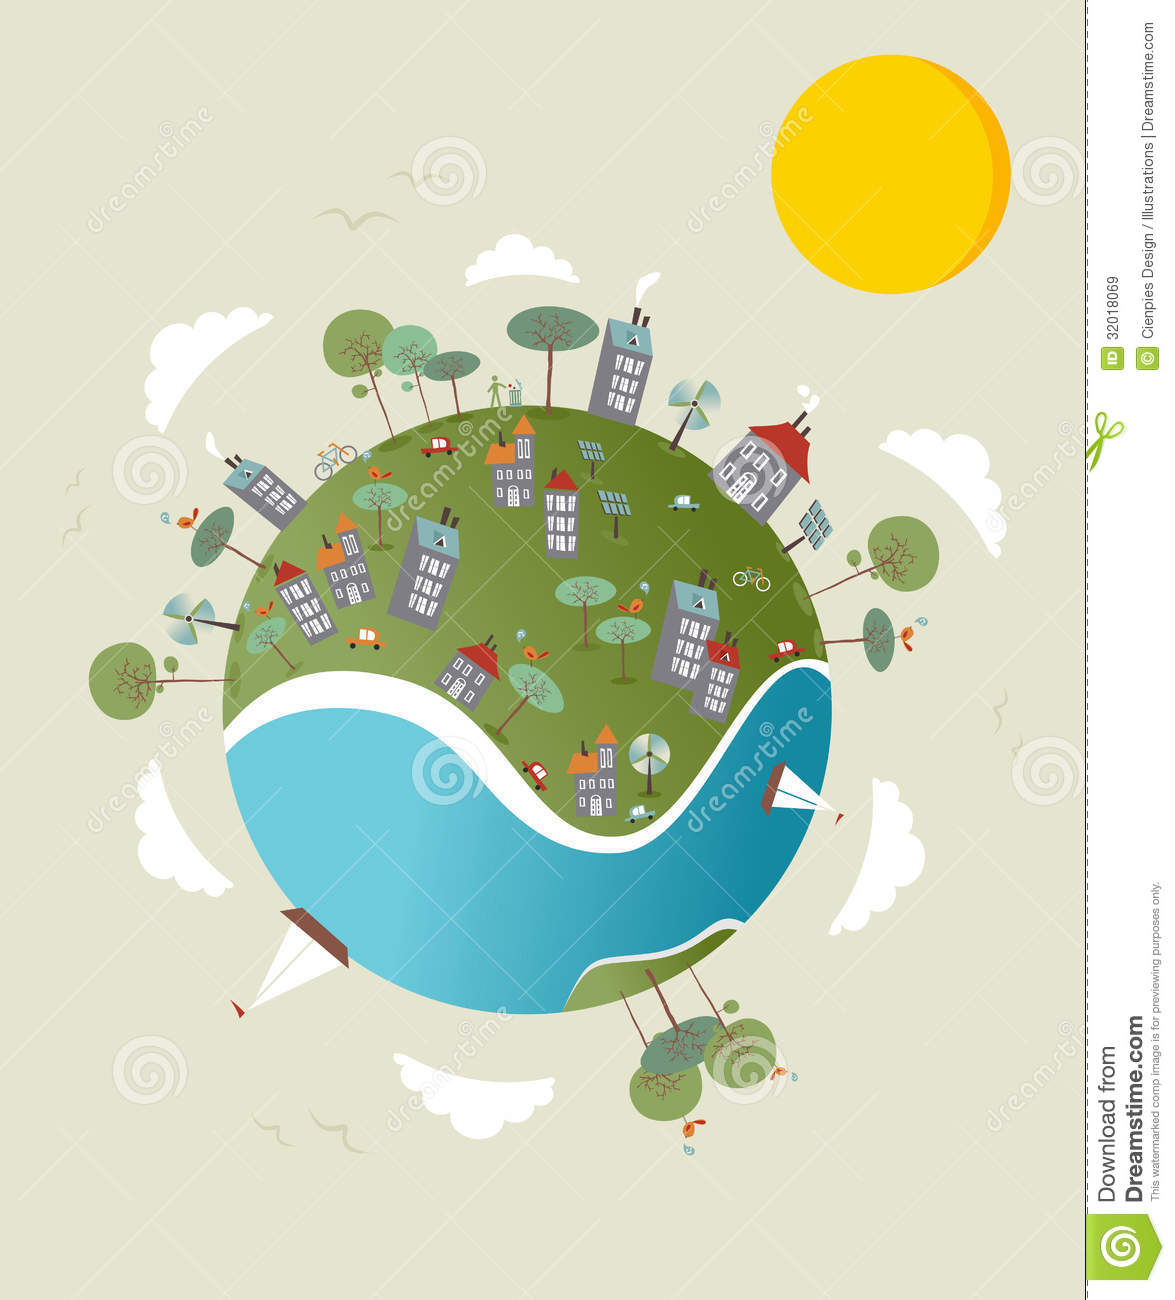 Go Green World Design Royalty Free Stock Images - Image